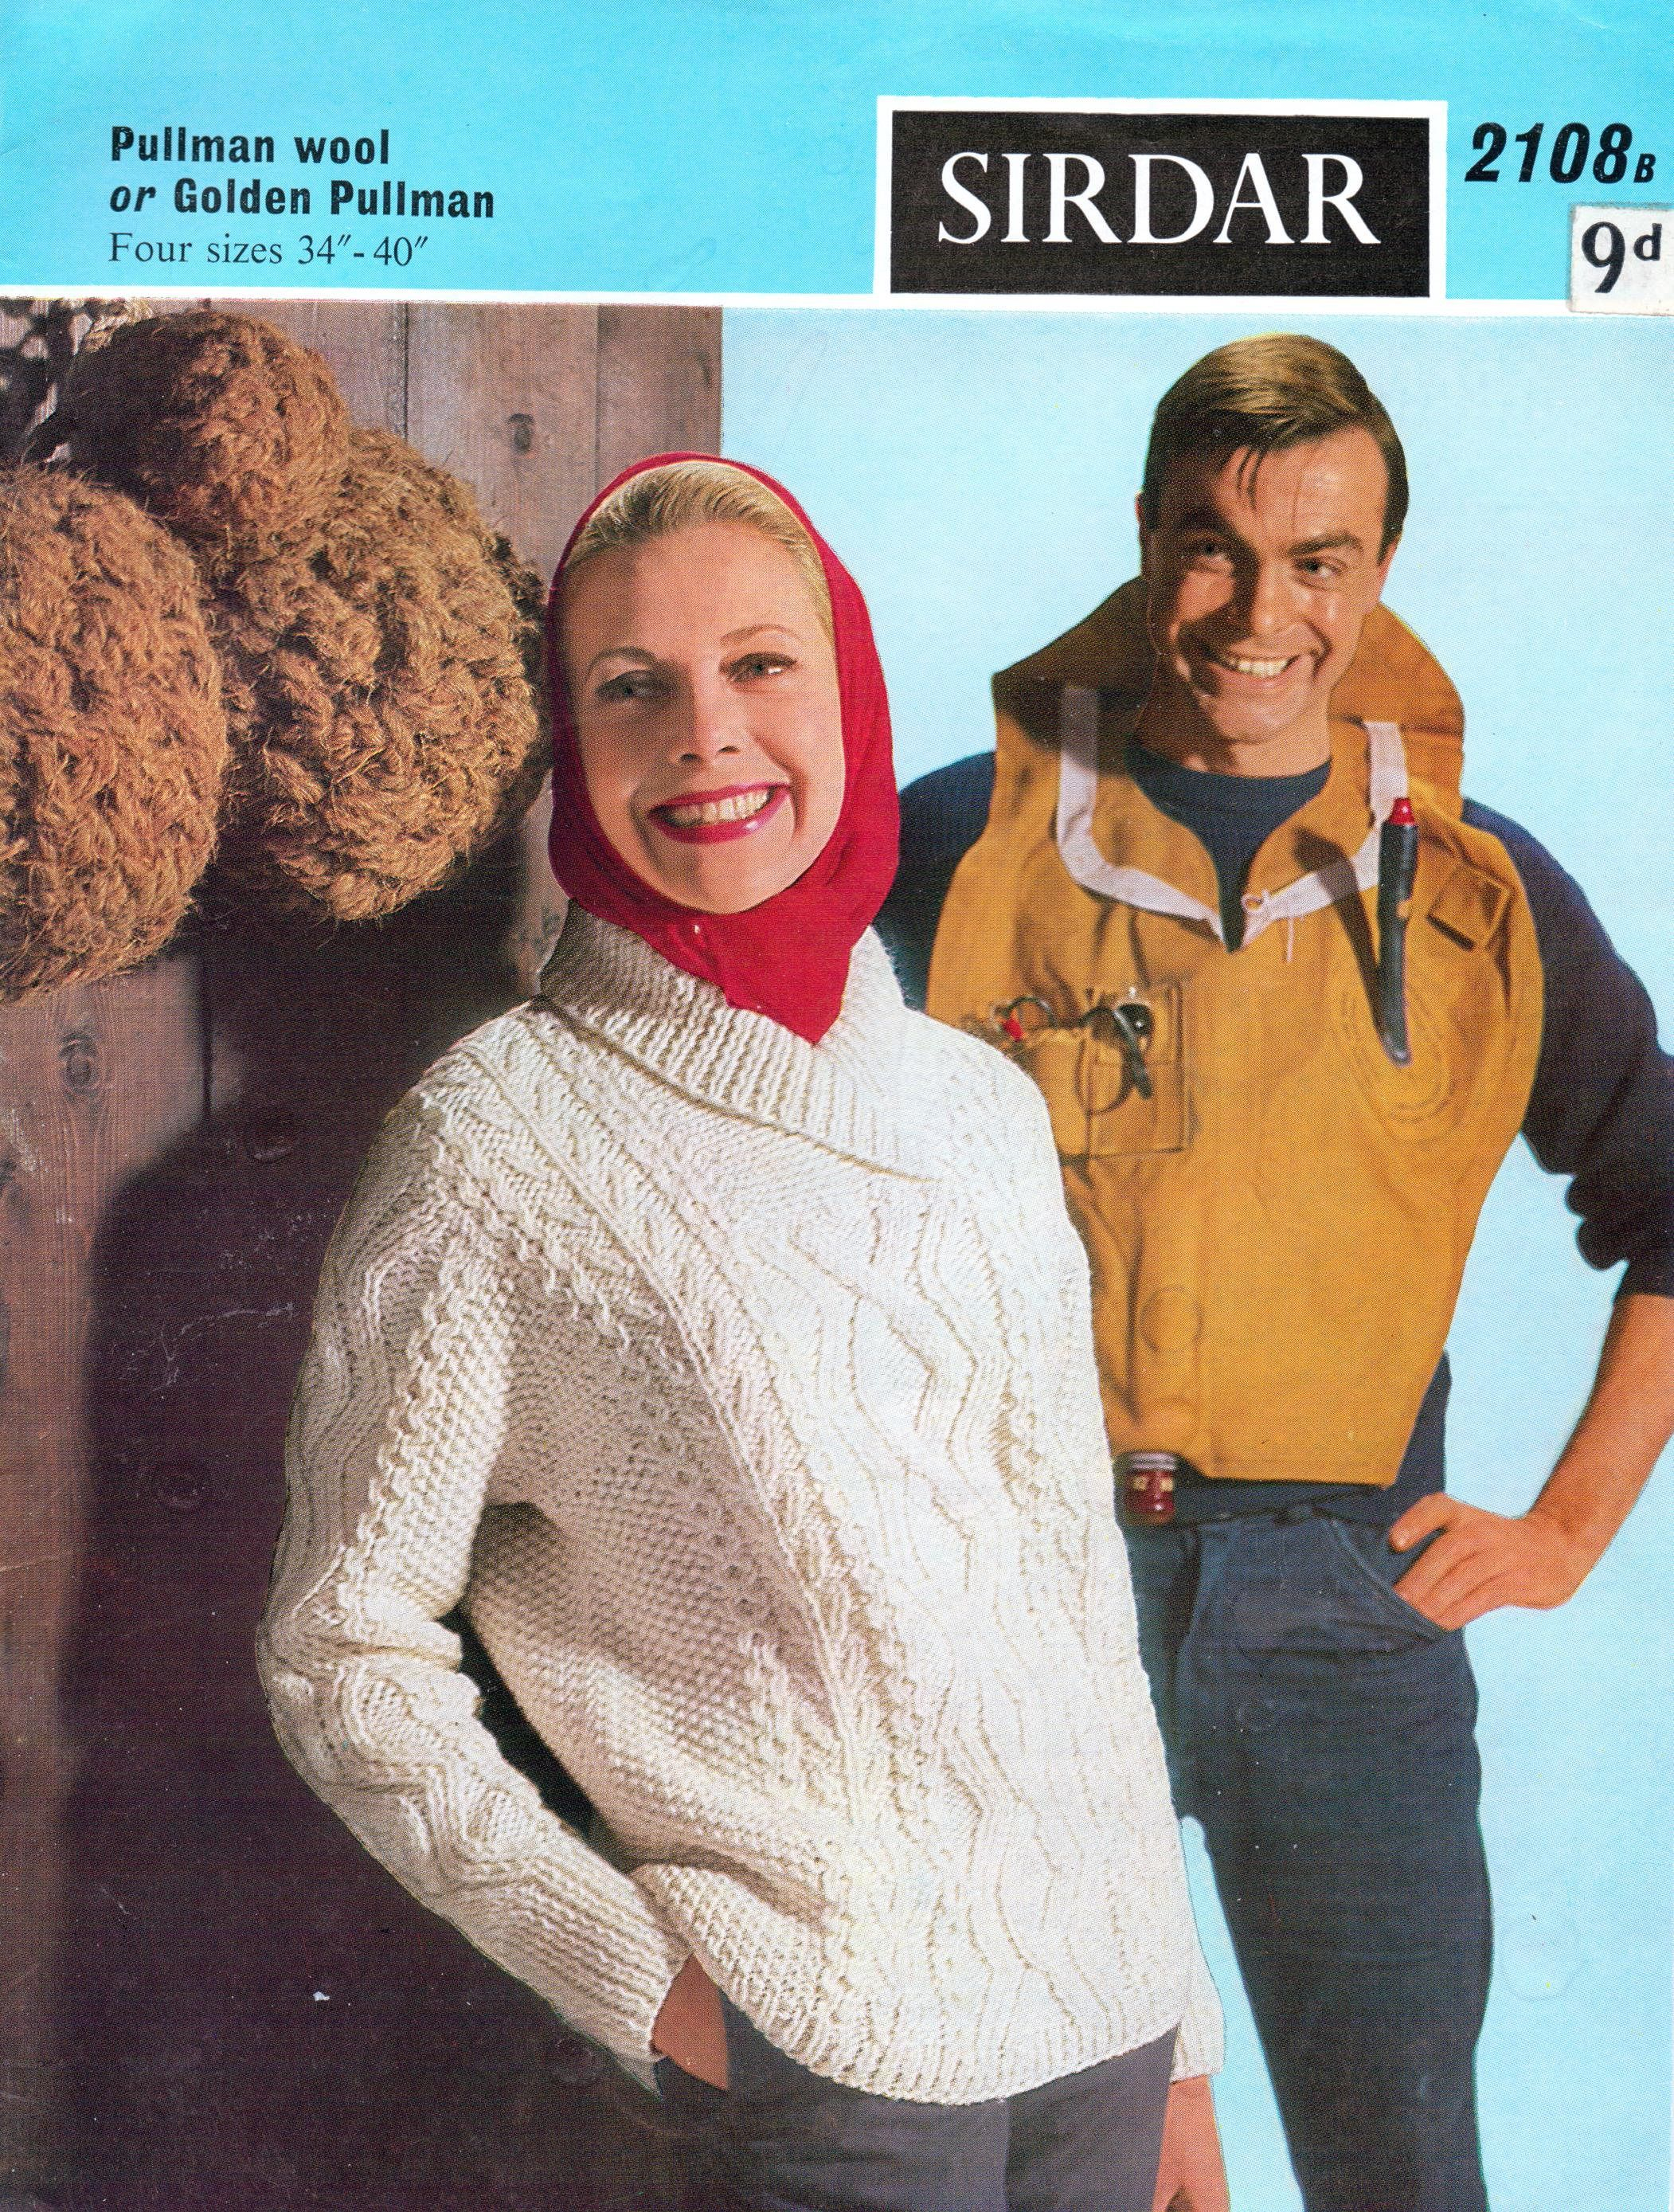 Aran Knitting Pattern Cable Shawl Collar Sweaters Jumpers 34 40 inch ...